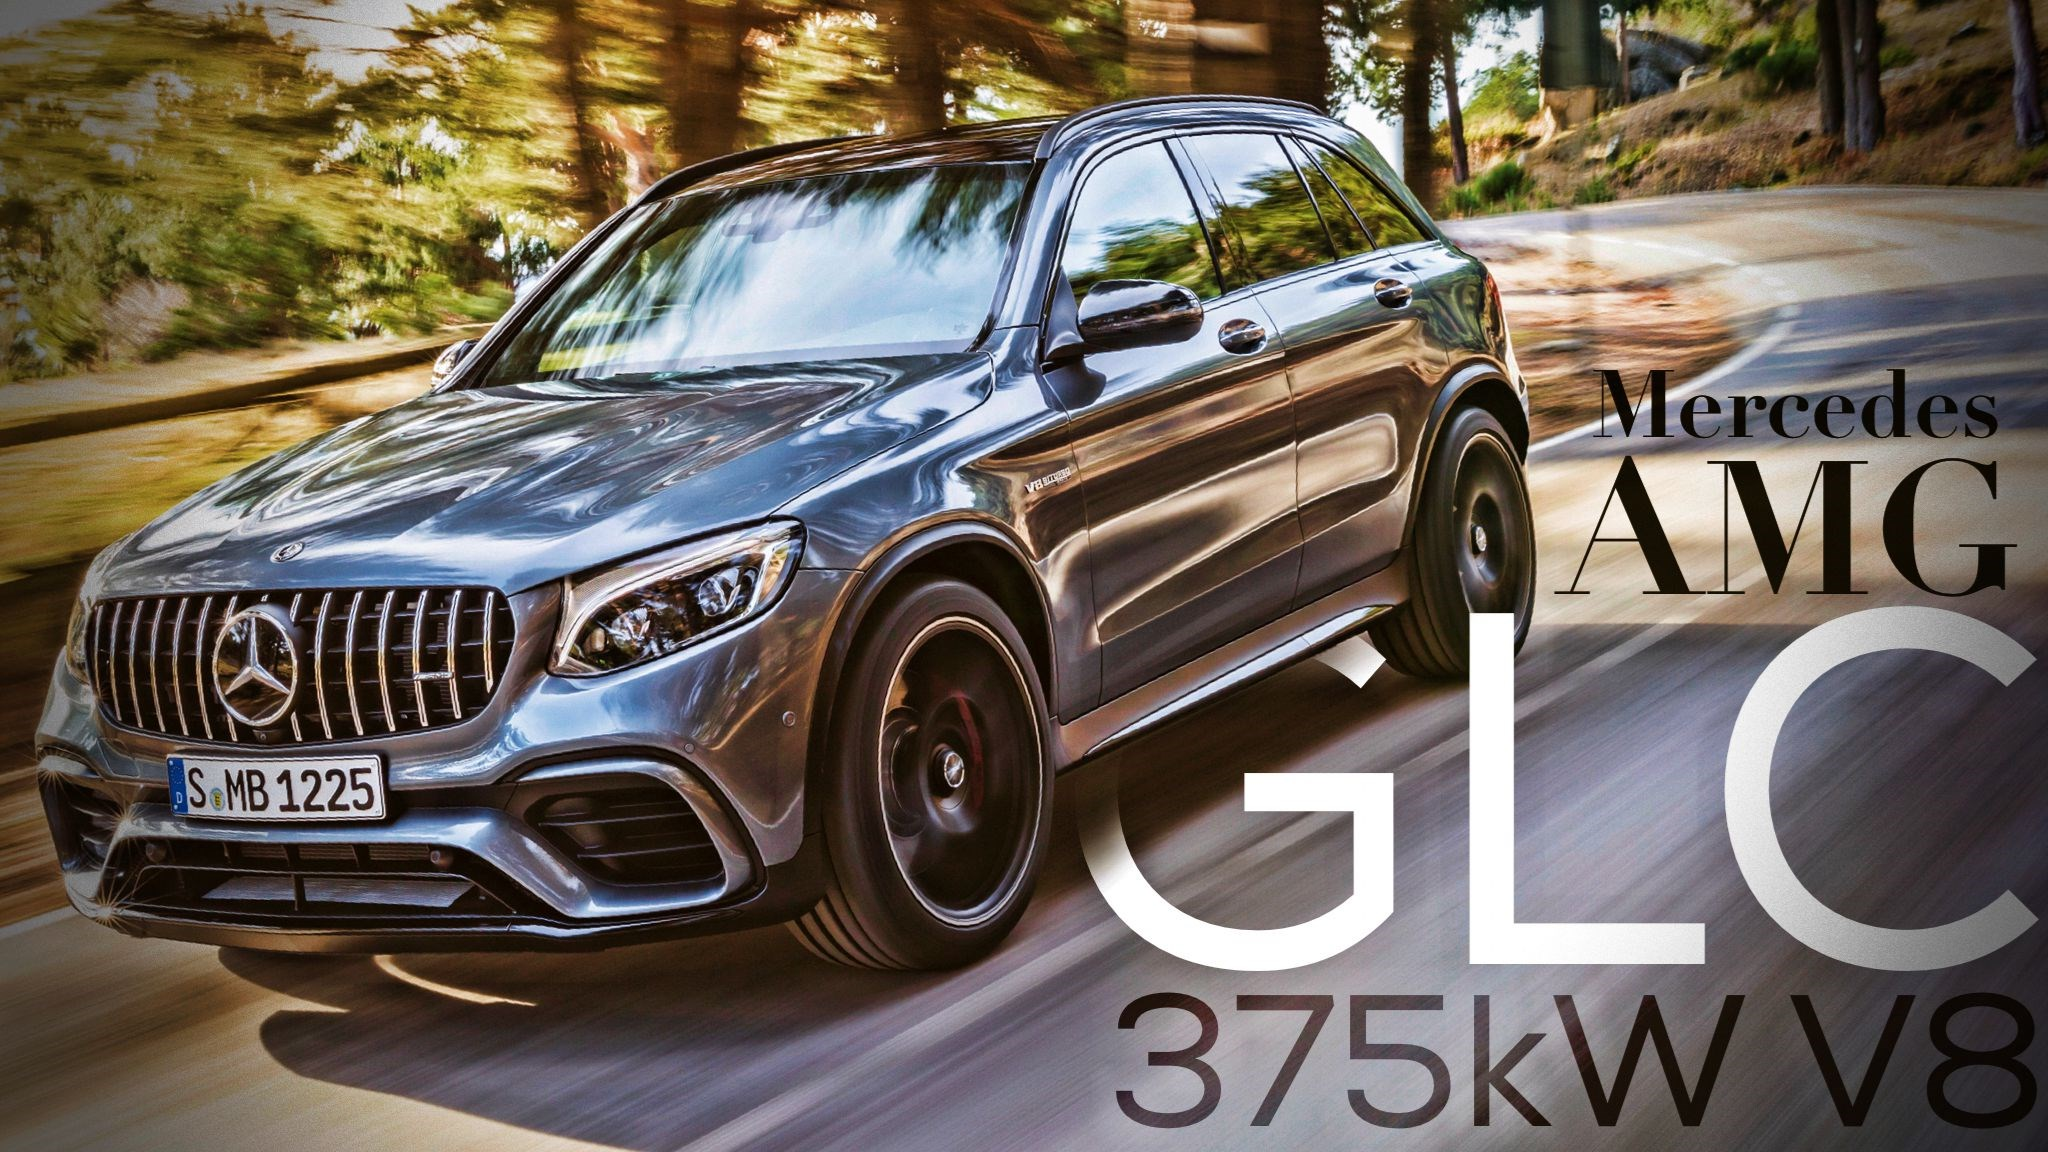 V8-Powered Mercedes-AMG GLC 63 Revealed Ahead Of NYIAS